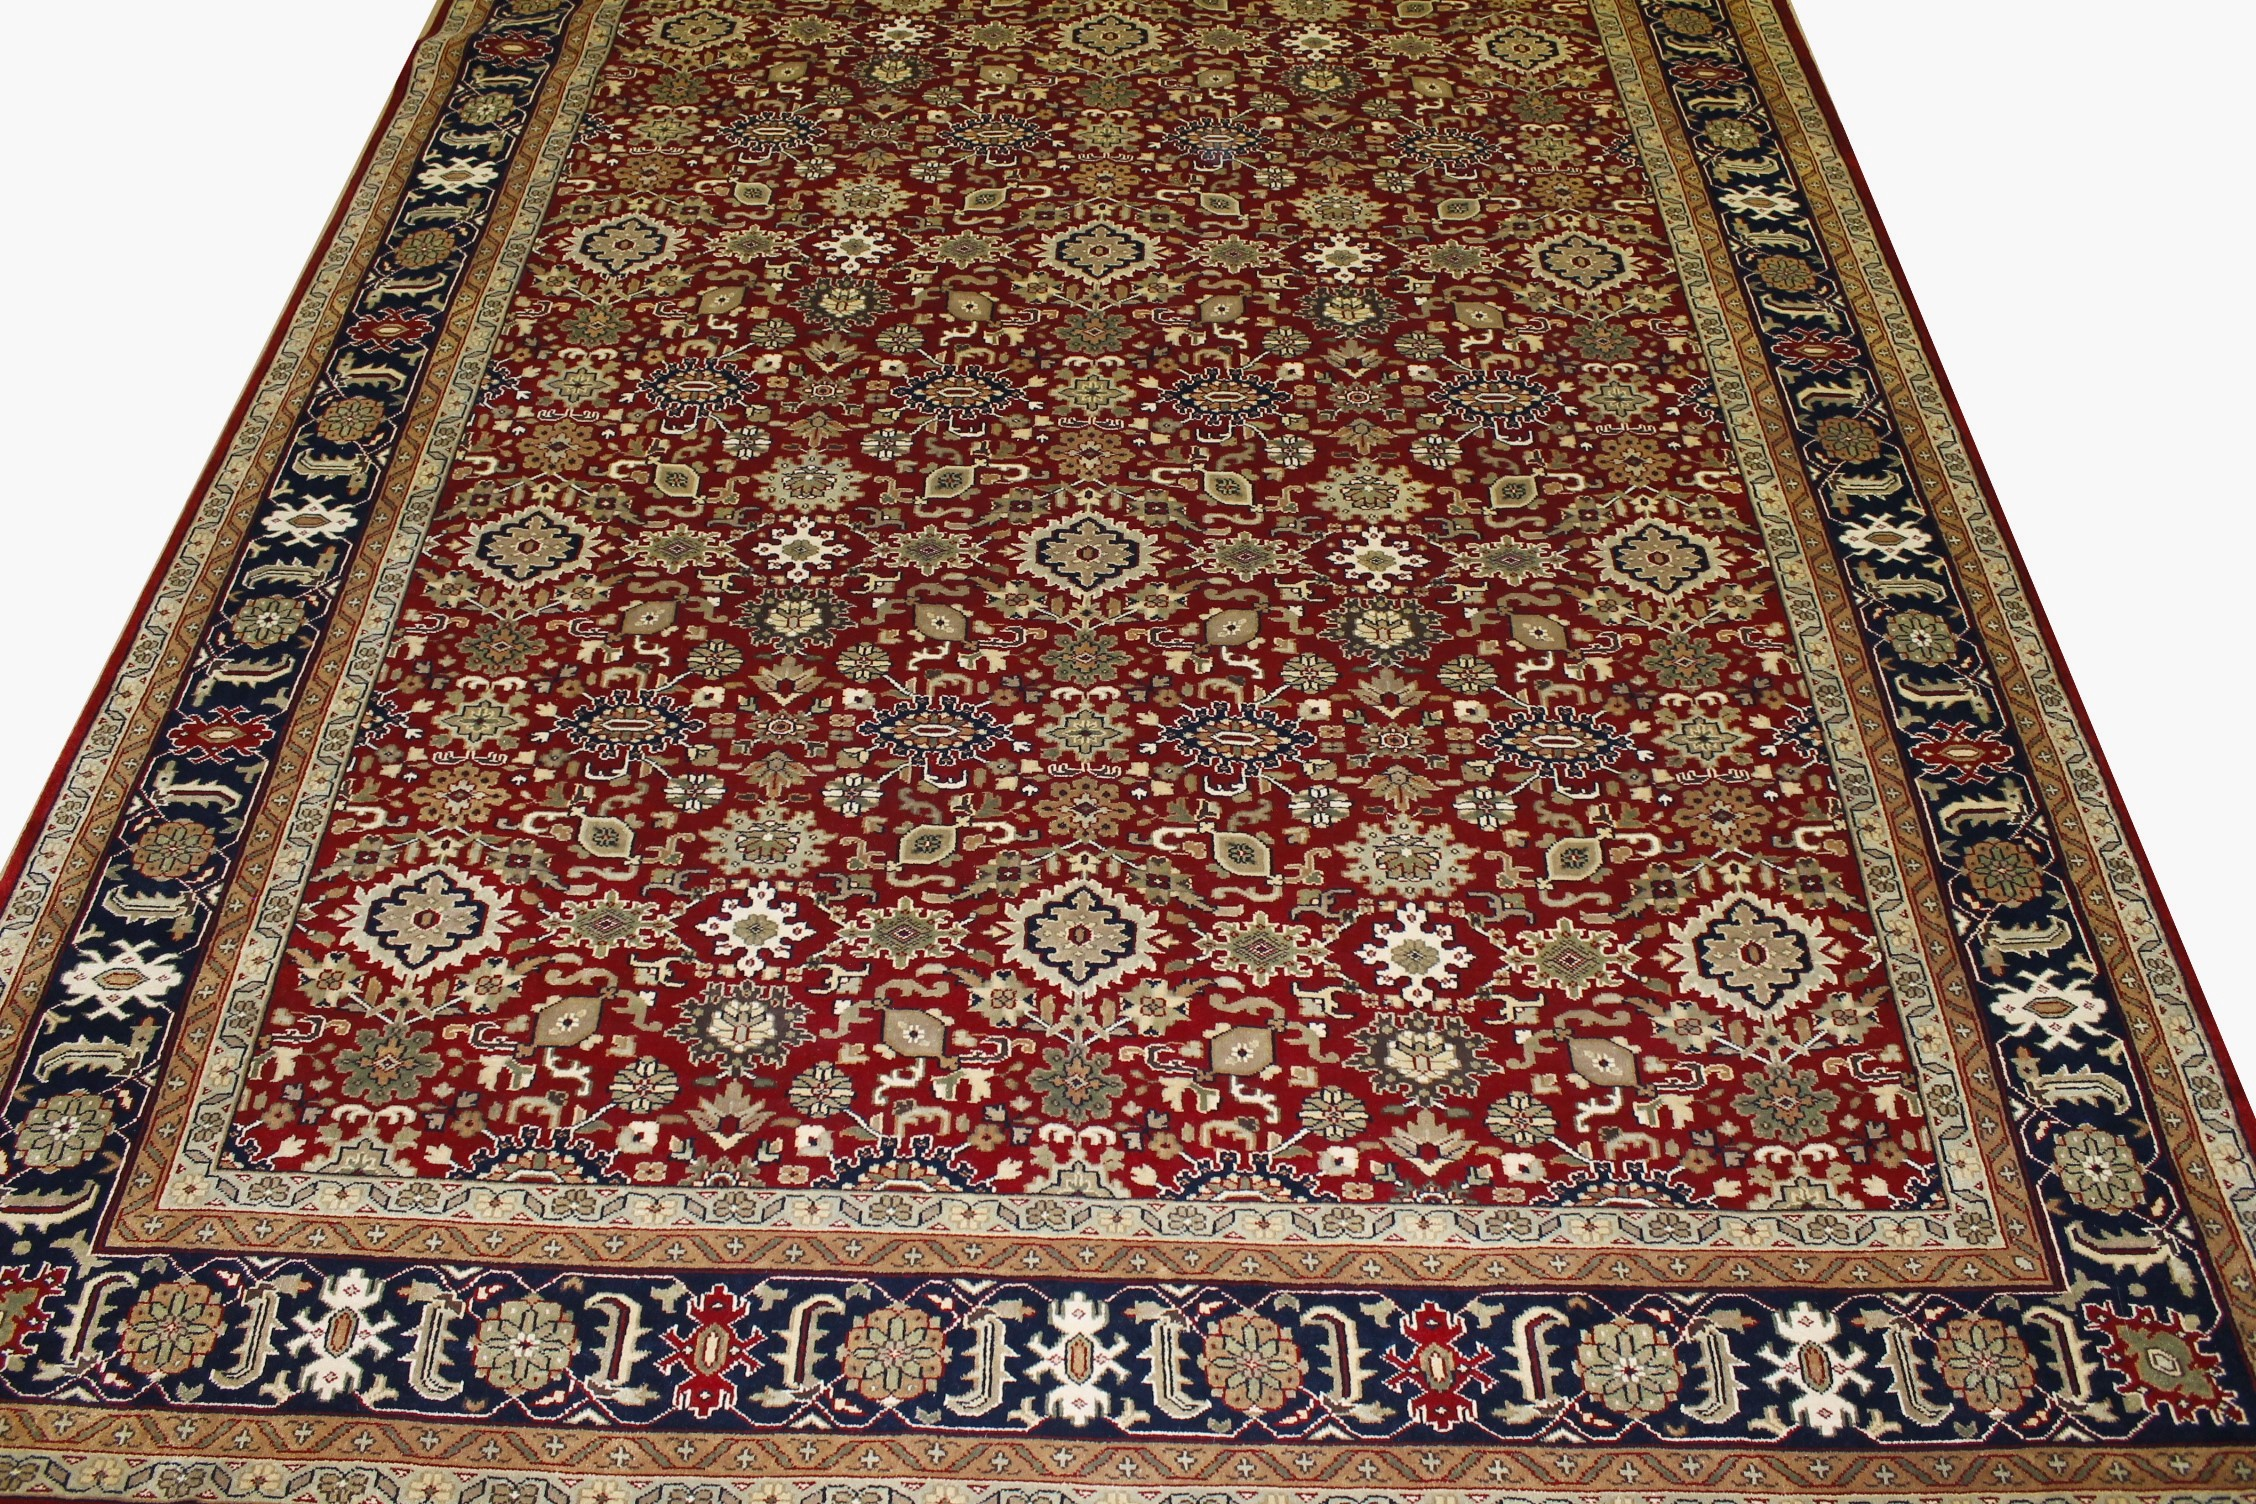 10x14 Traditional Hand Knotted Wool Area Rug - MR15320